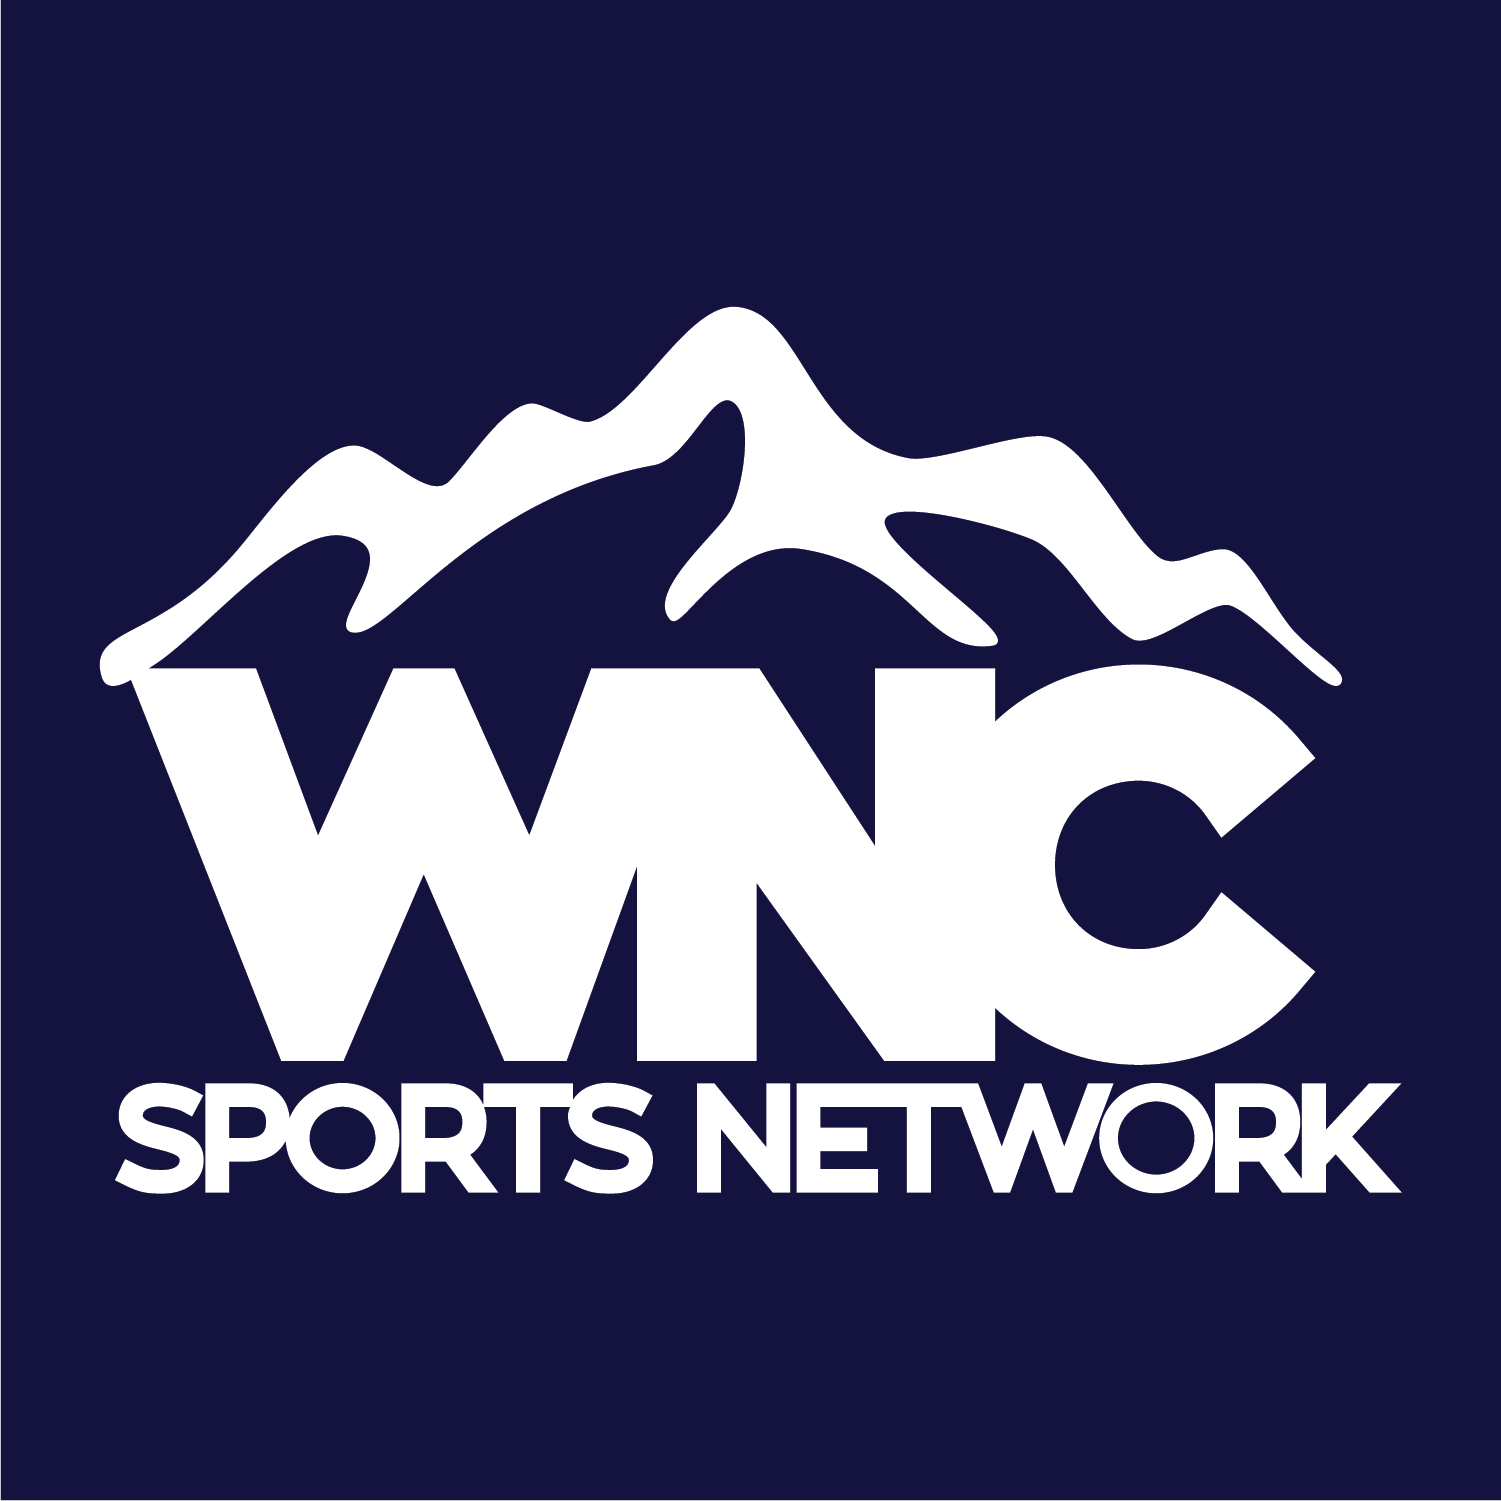 http://wncsportsnetwork.com/wp-content/uploads/2019/08/Original_Small.png